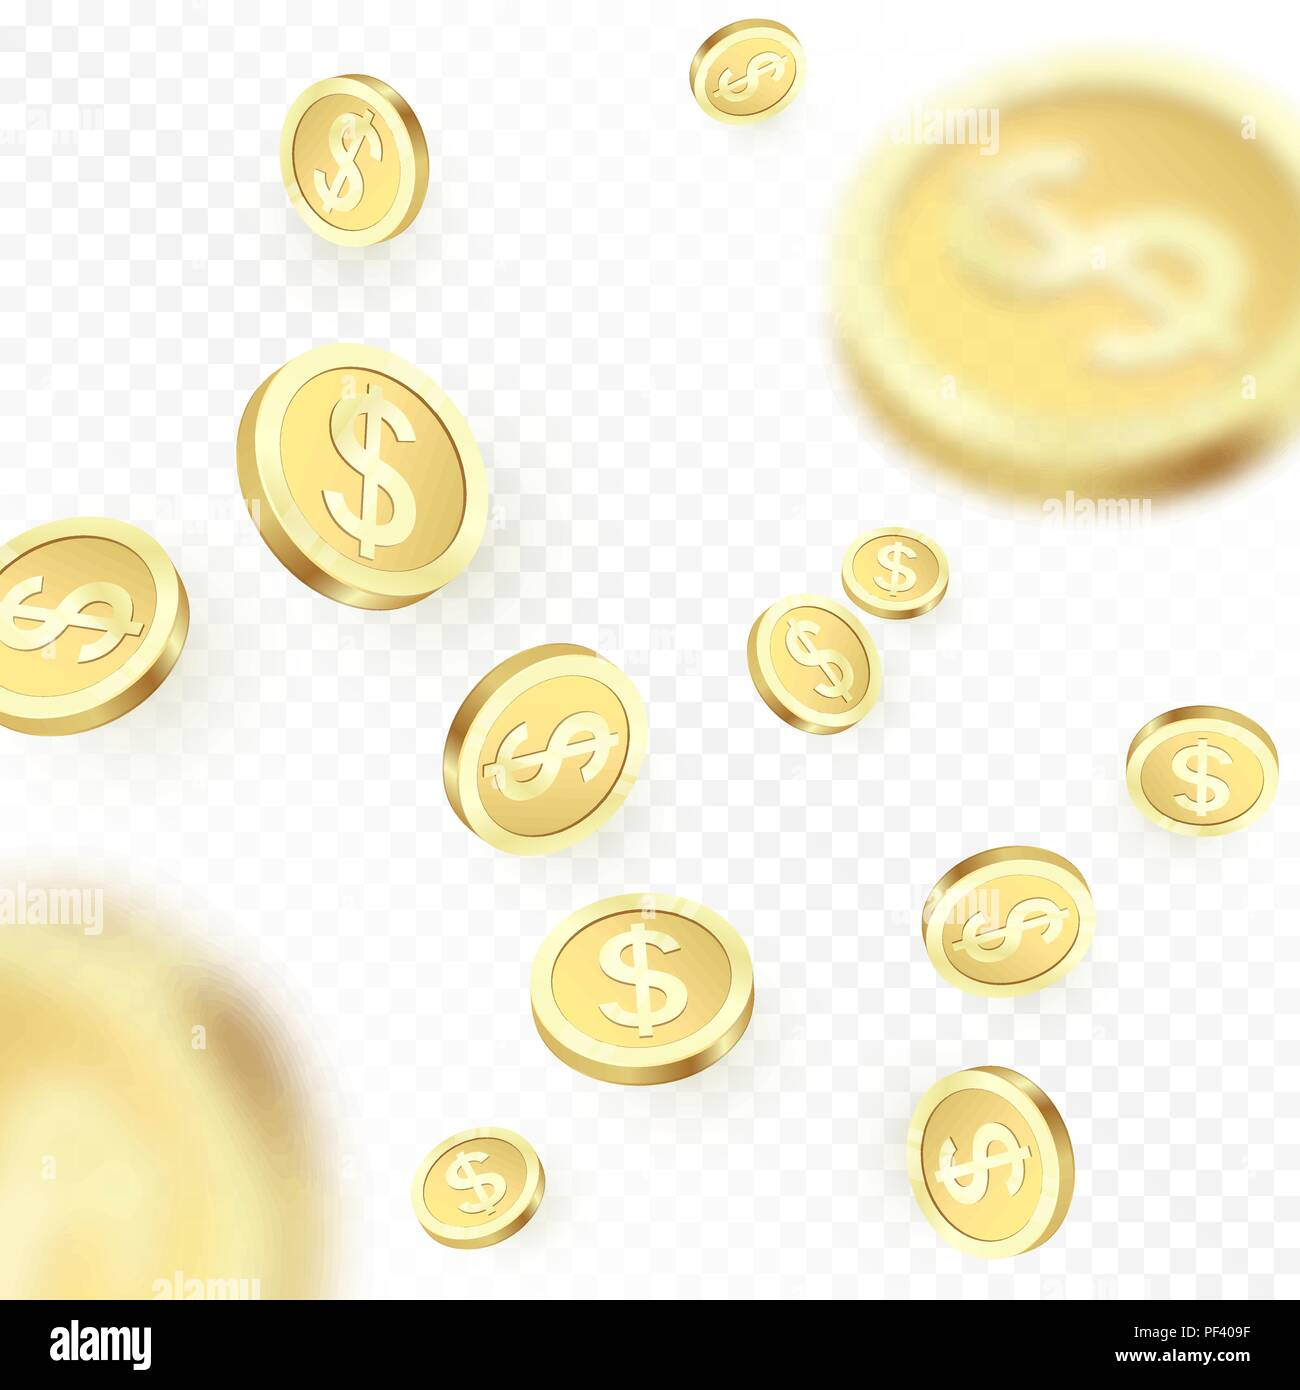 87907115ef93 Heap falling golden coins isolated on transparent background. Shiny metal  dollar rain. Casino jackpot